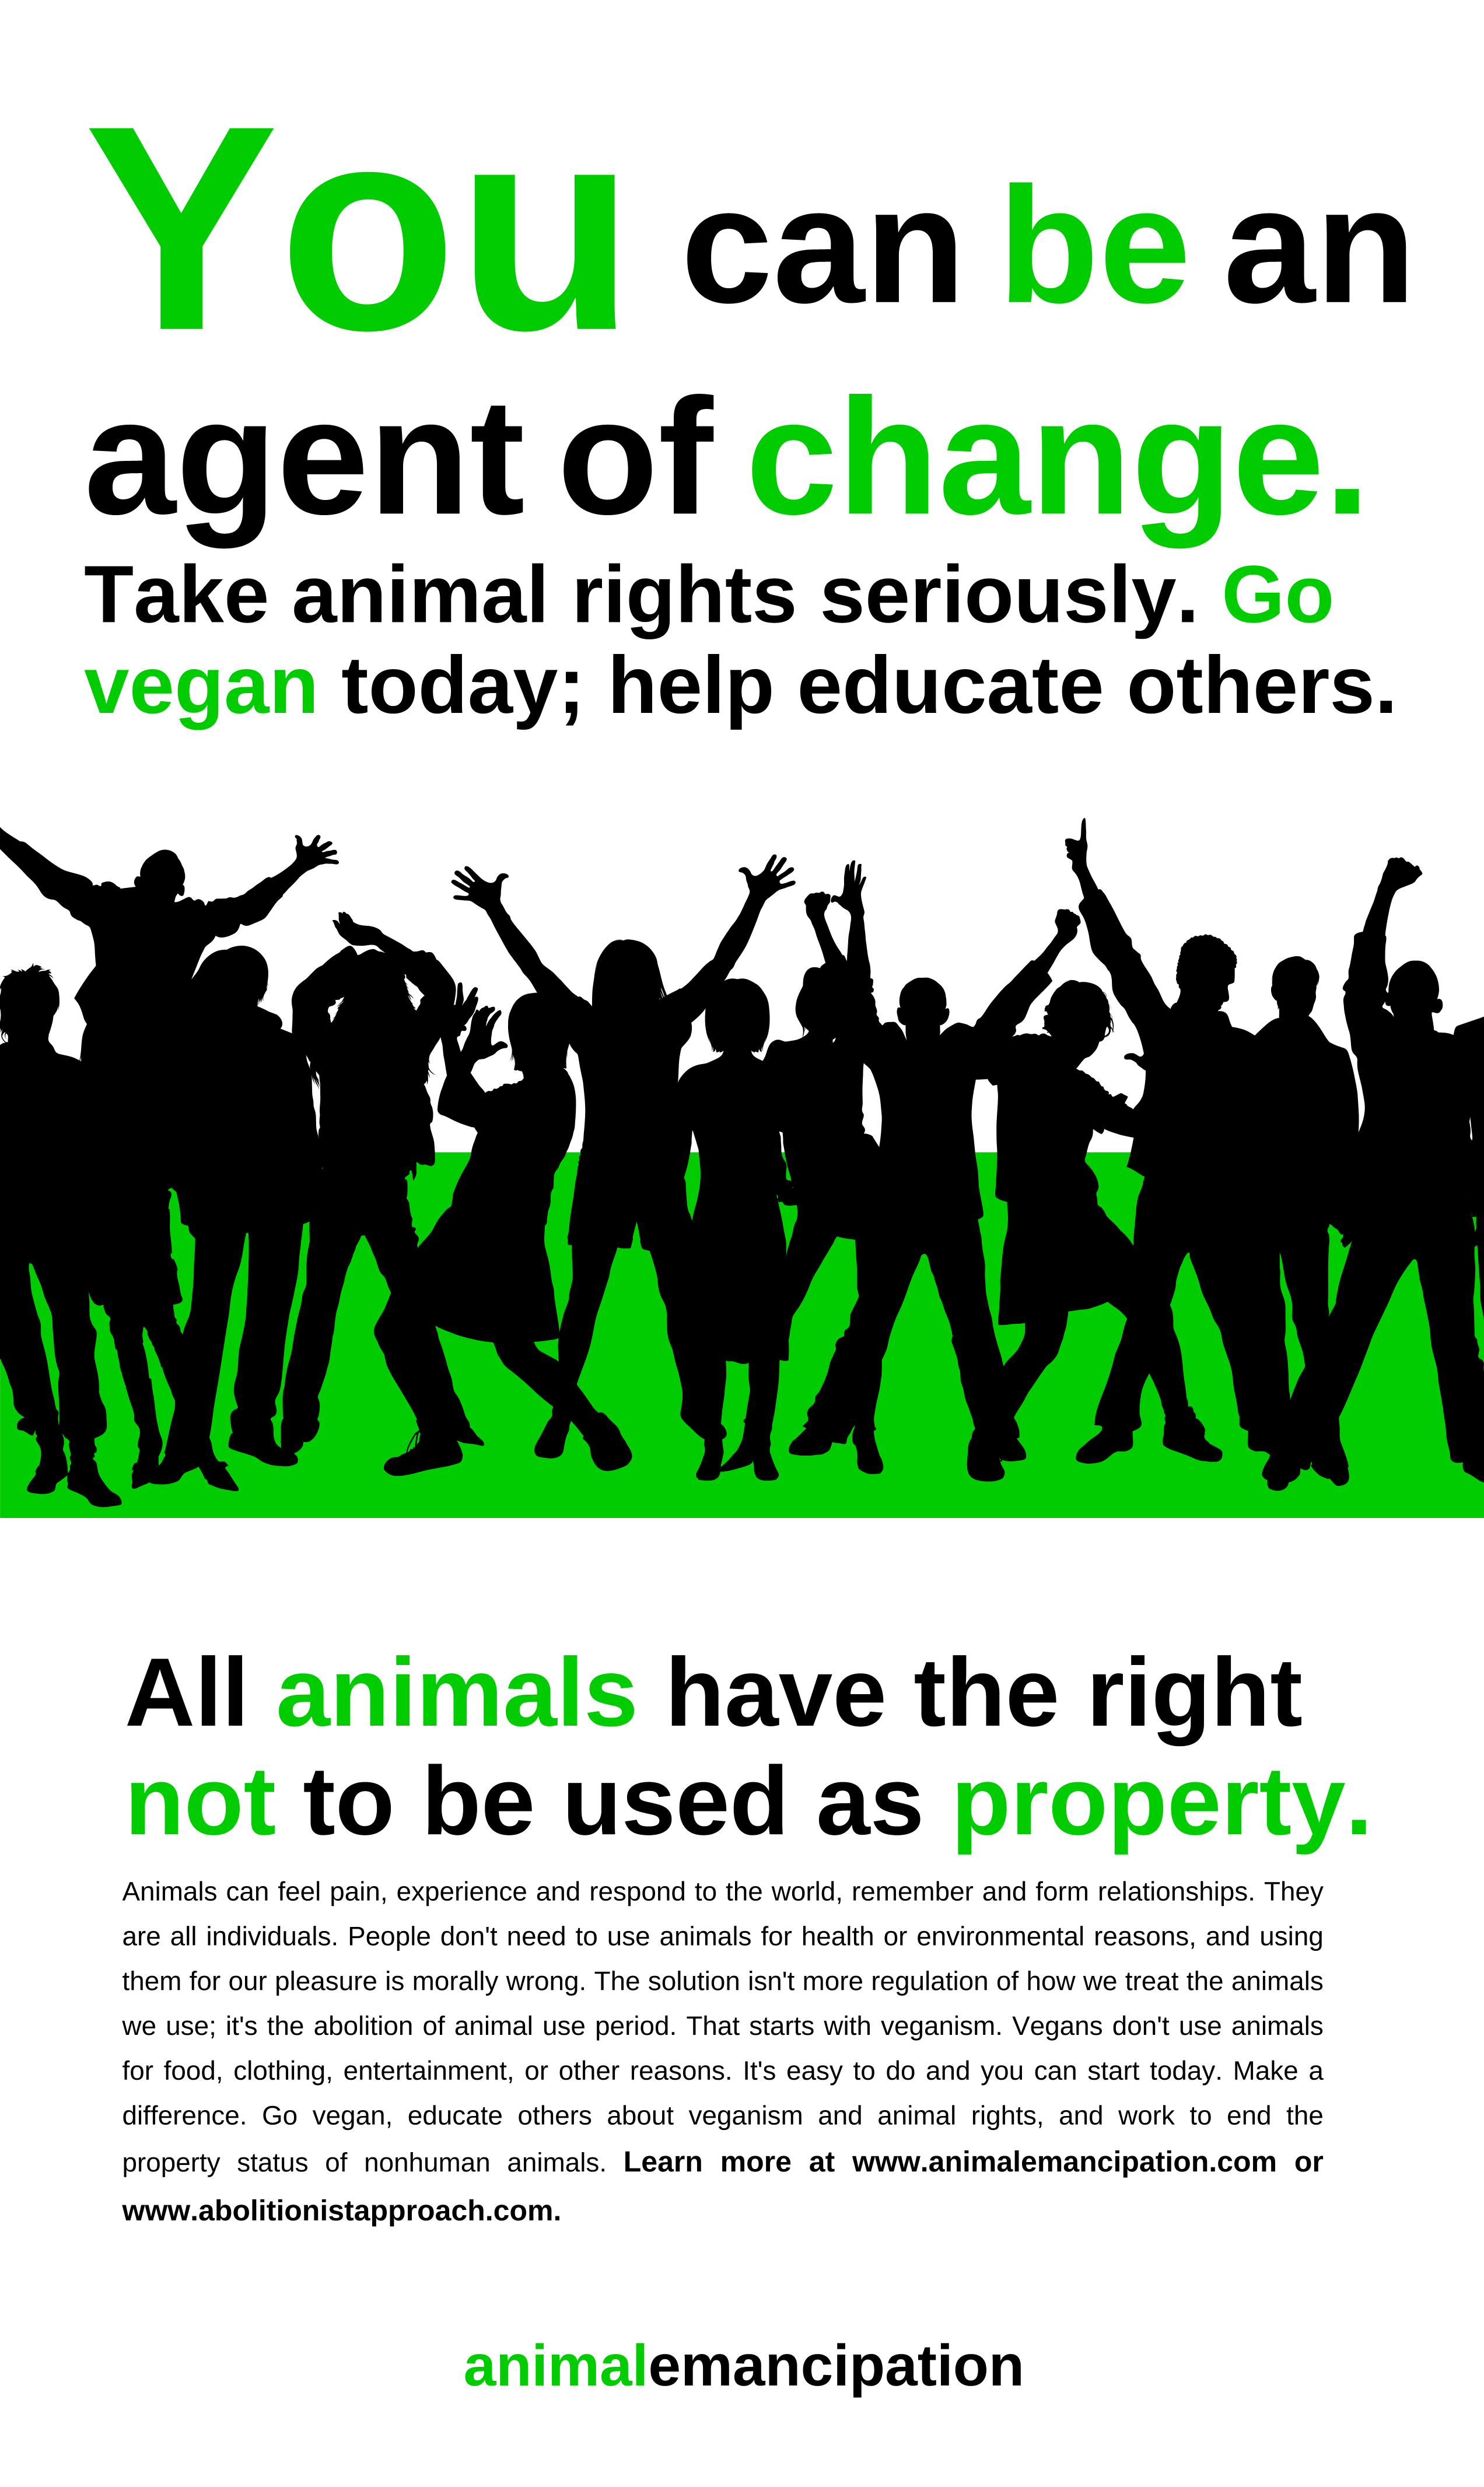 http://animalemancipation.com/wp-content/uploads/outreach/8by14/ae_agentofchange_uSlegal_white.png